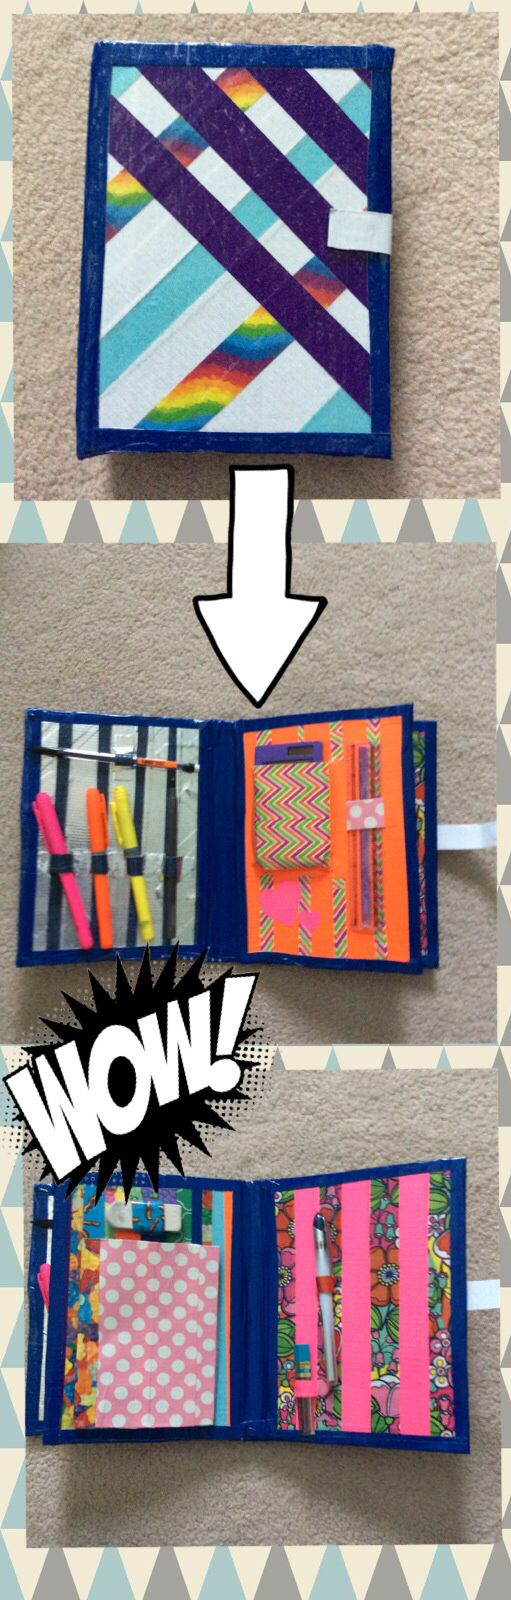 Tape Duct Tape And Book On Pinterest